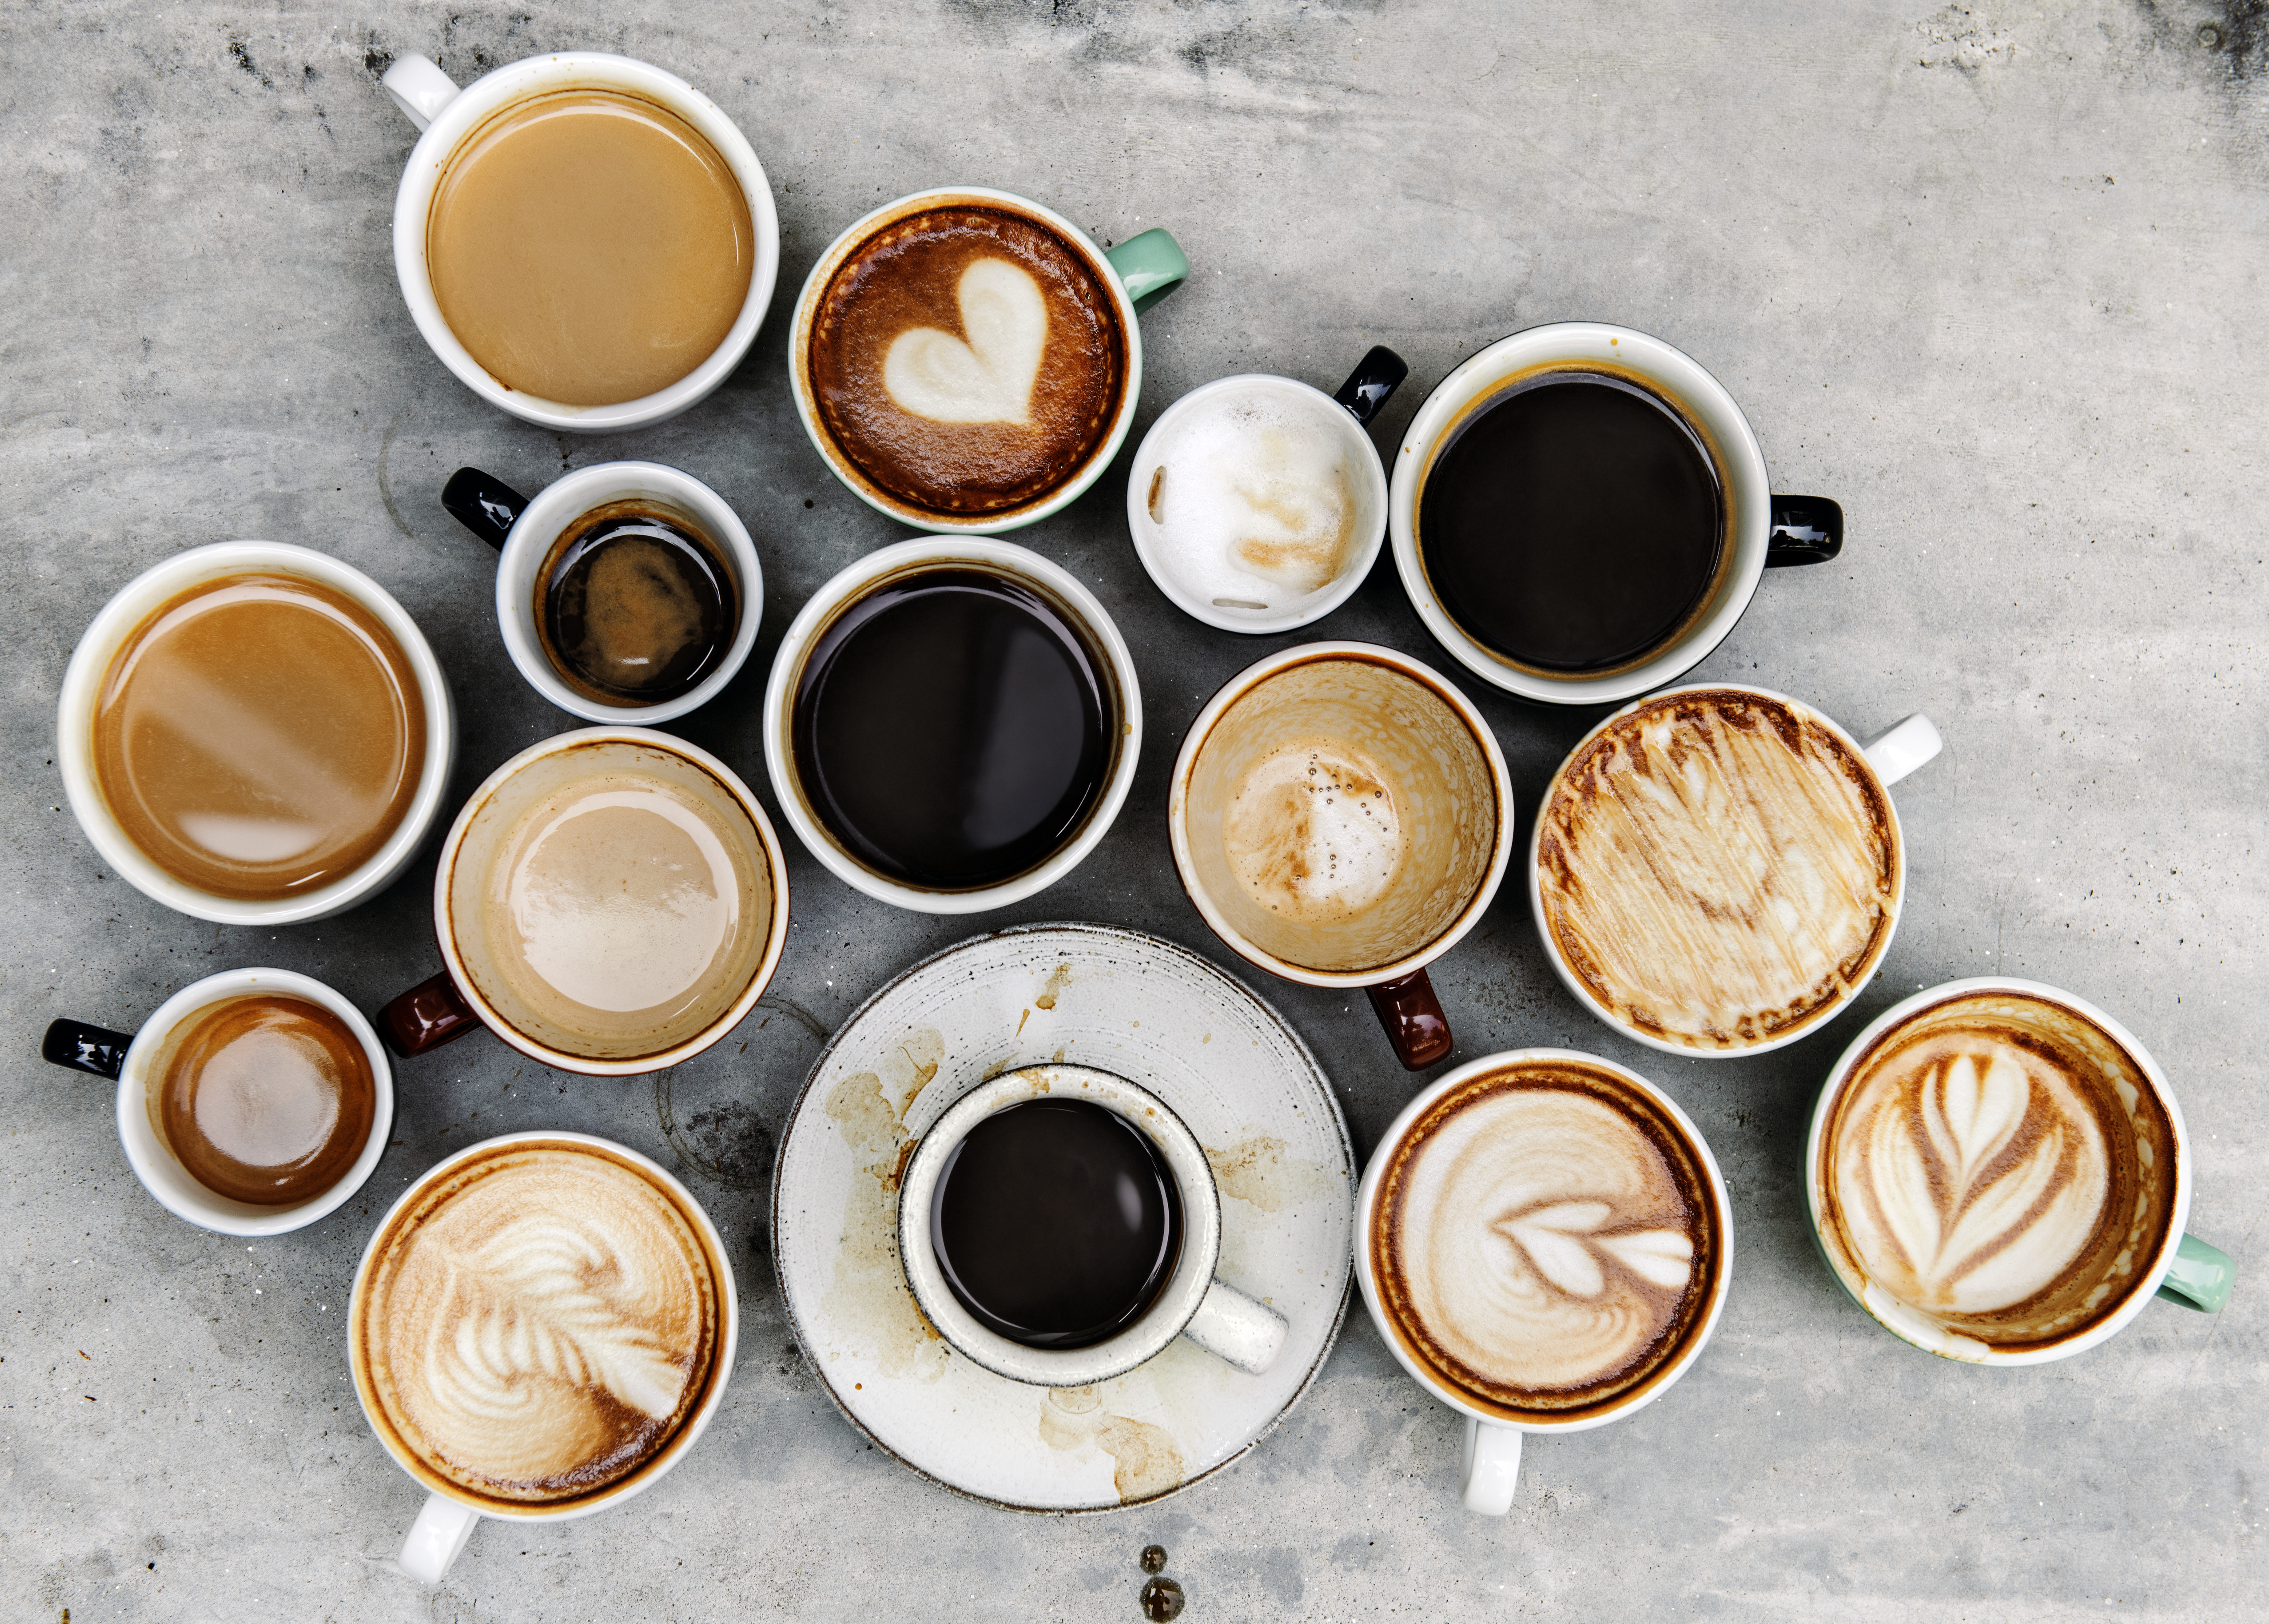 coffee cup in varieties of sizes and shapes